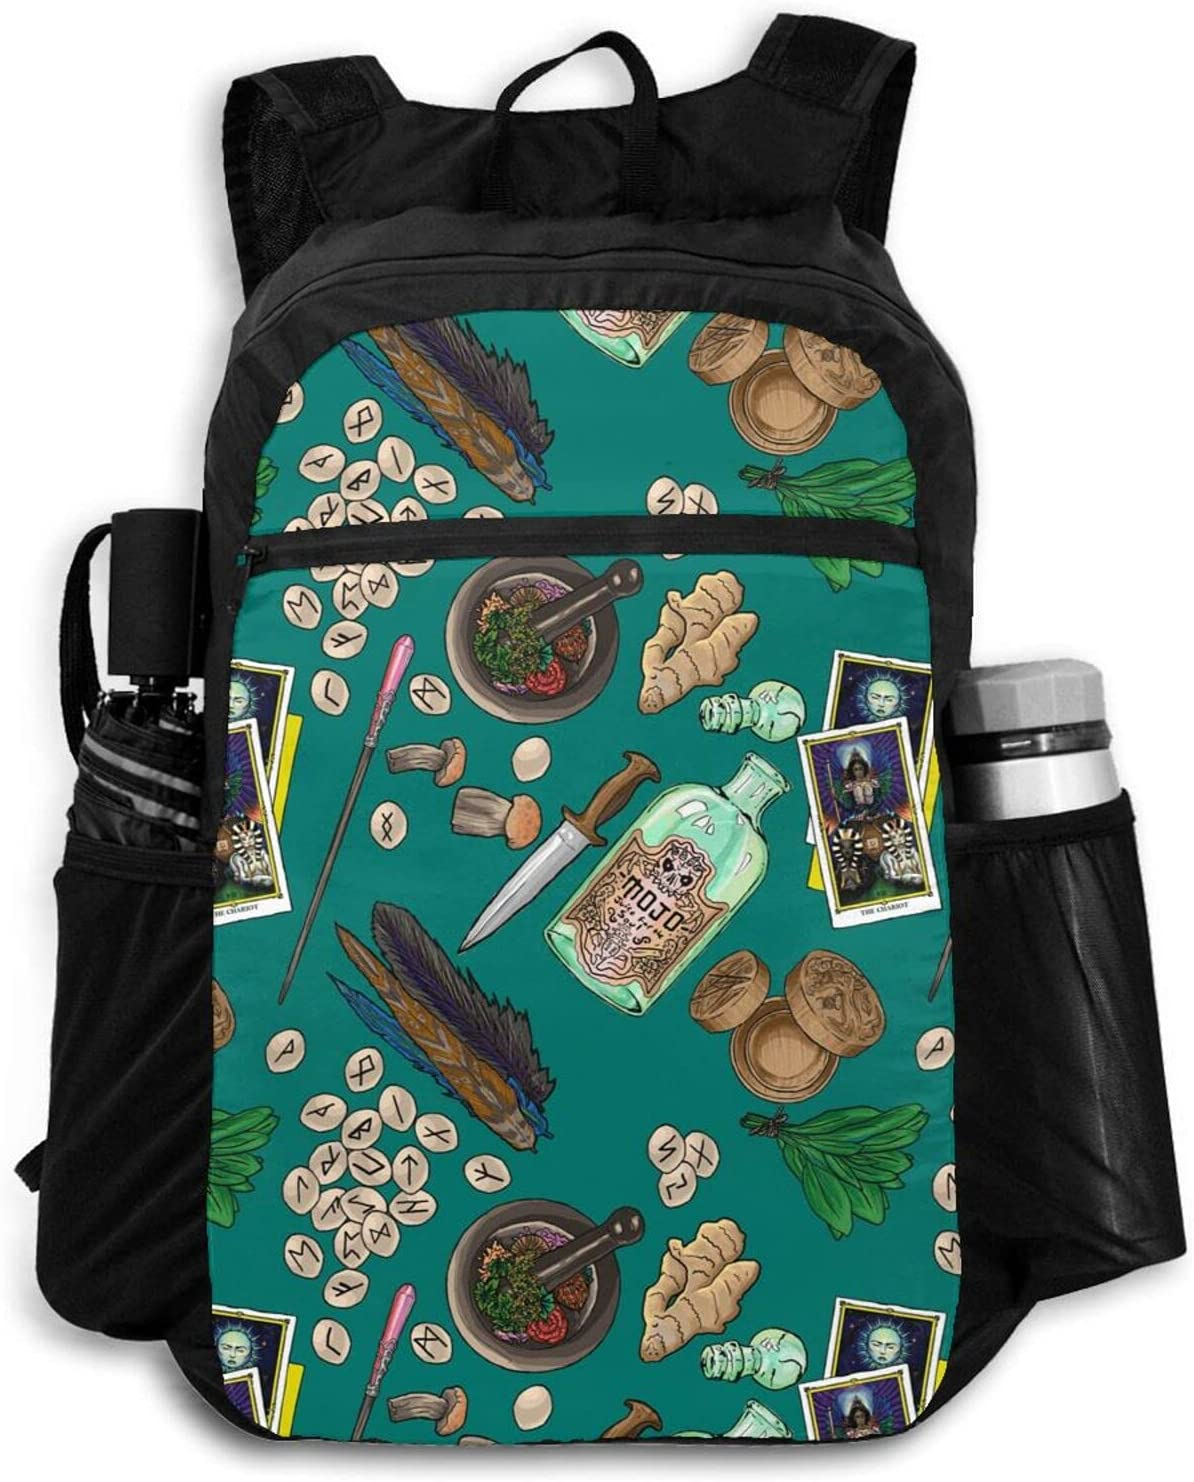 Zolama Witch Table in Teal Backpacks Packable Max 51% OFF for Omaha Mall Men Women Cute